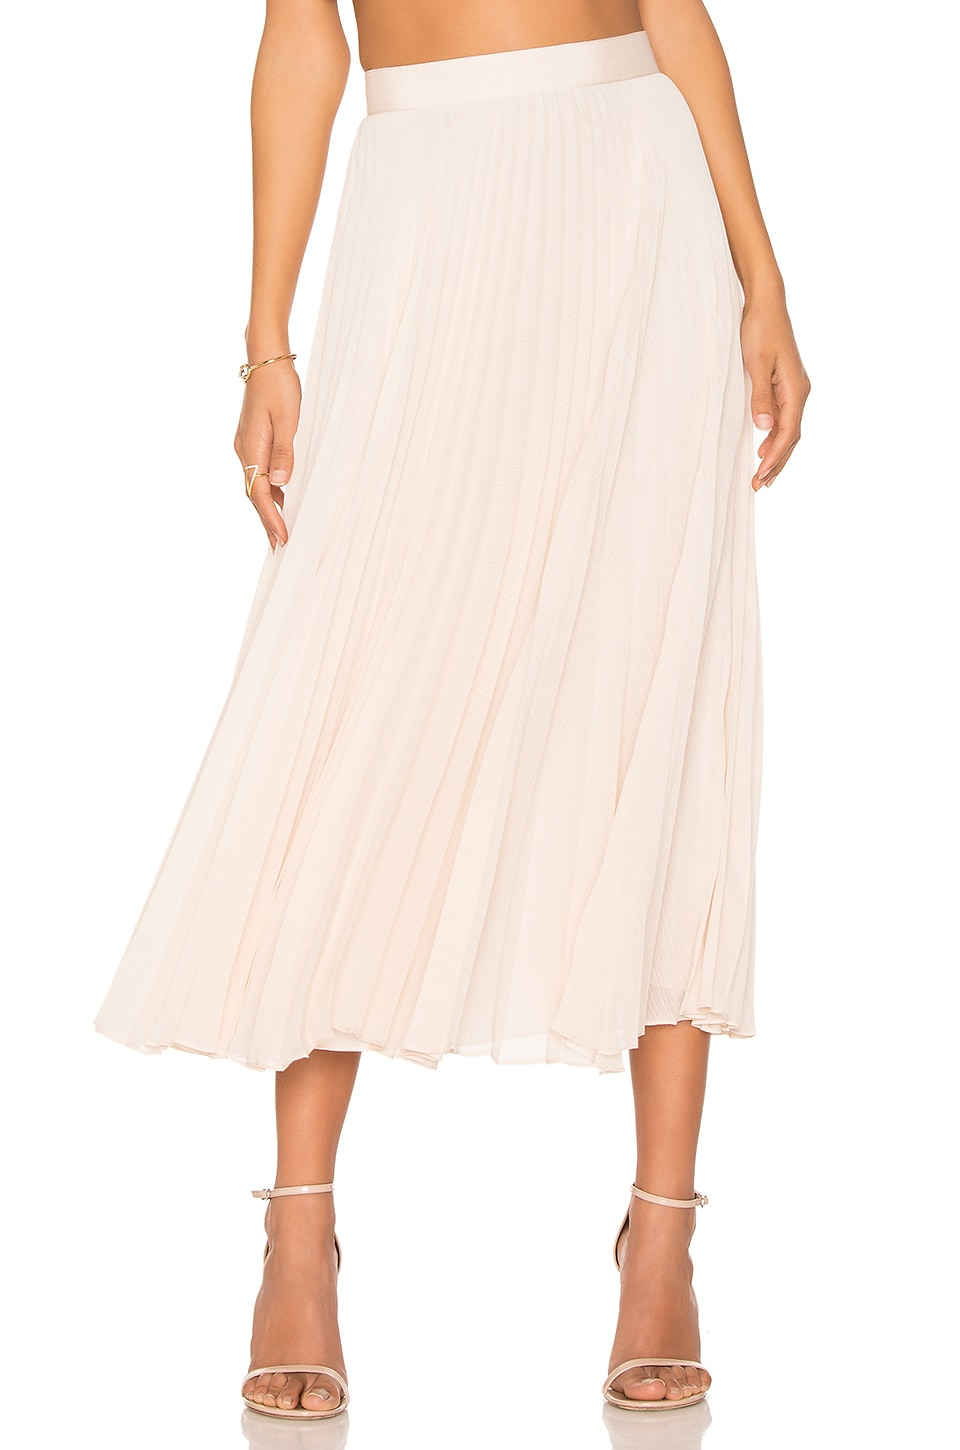 Alice + Olivia Essie Skirt in Champagne